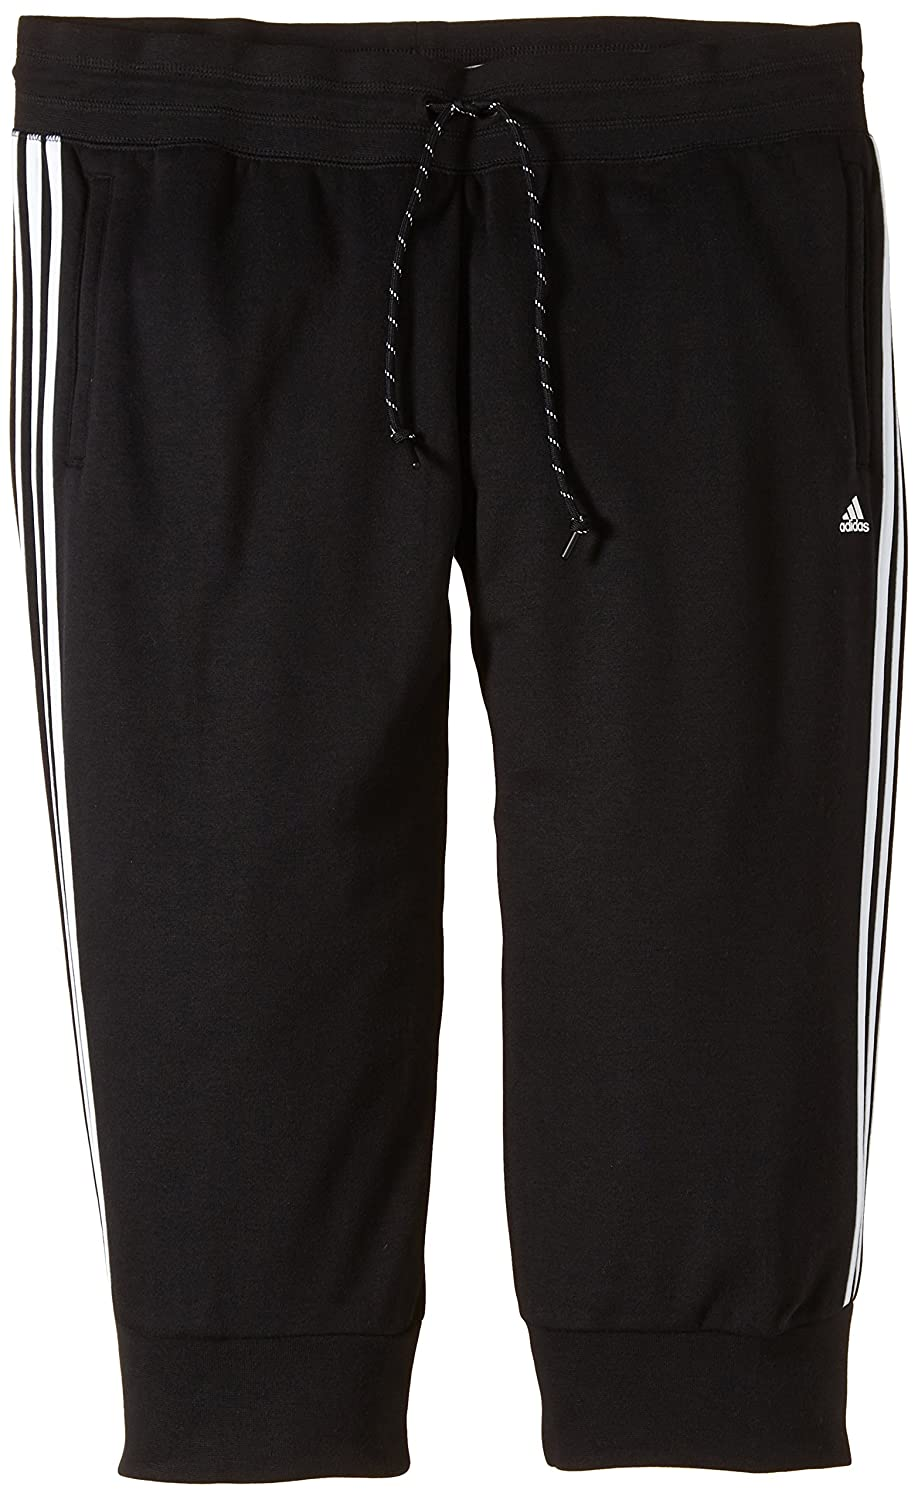 adidas Damen Sporthose Essentials 3-Stripes 3/4